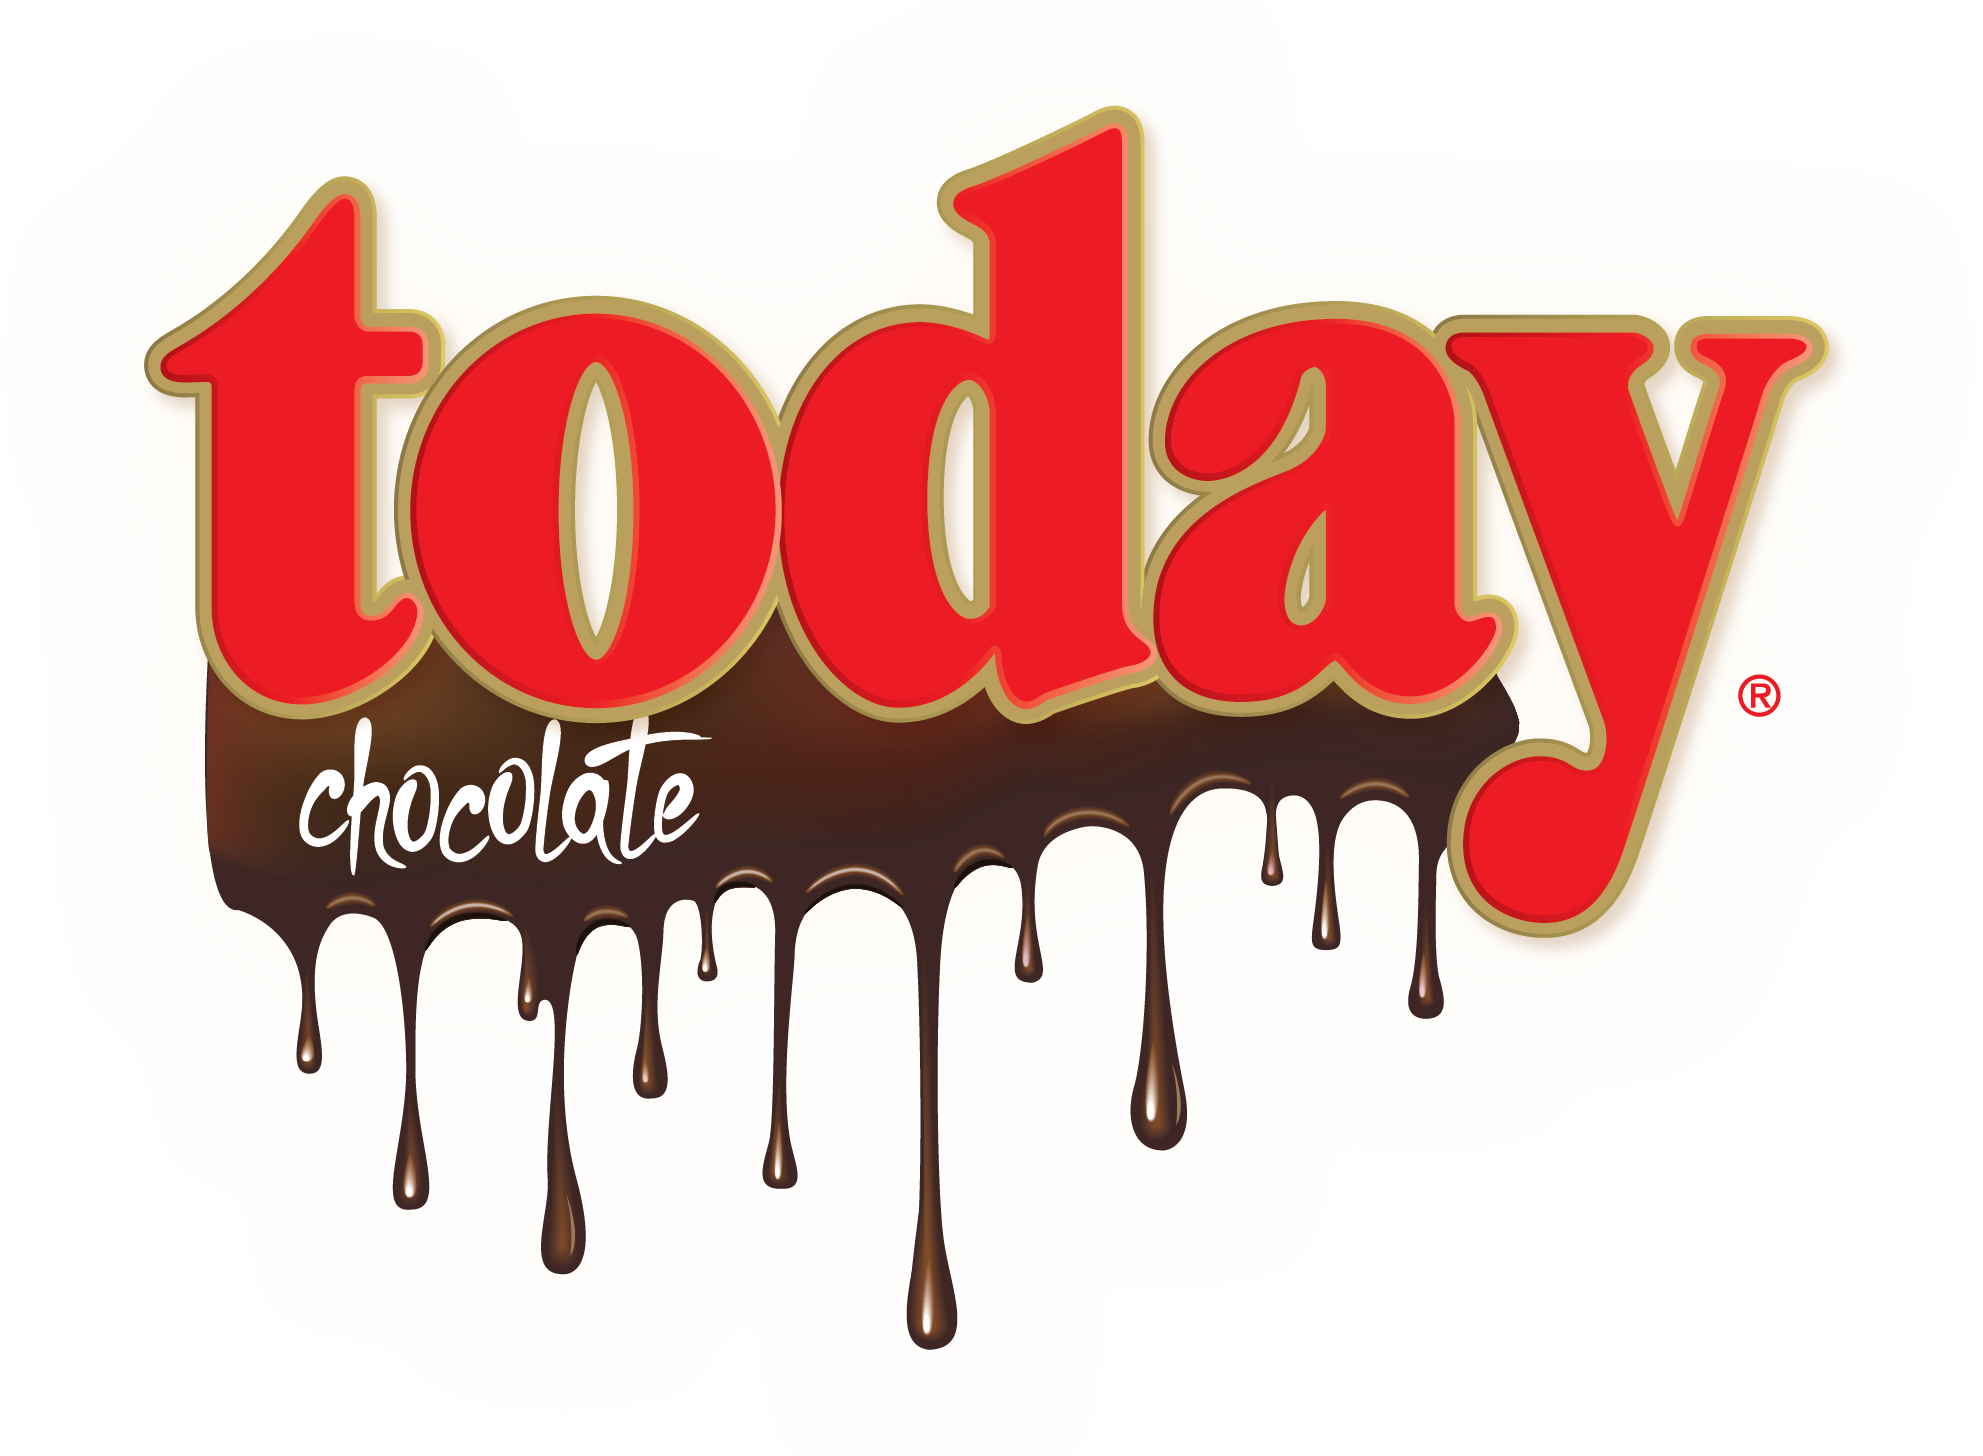 Today Chocolate.